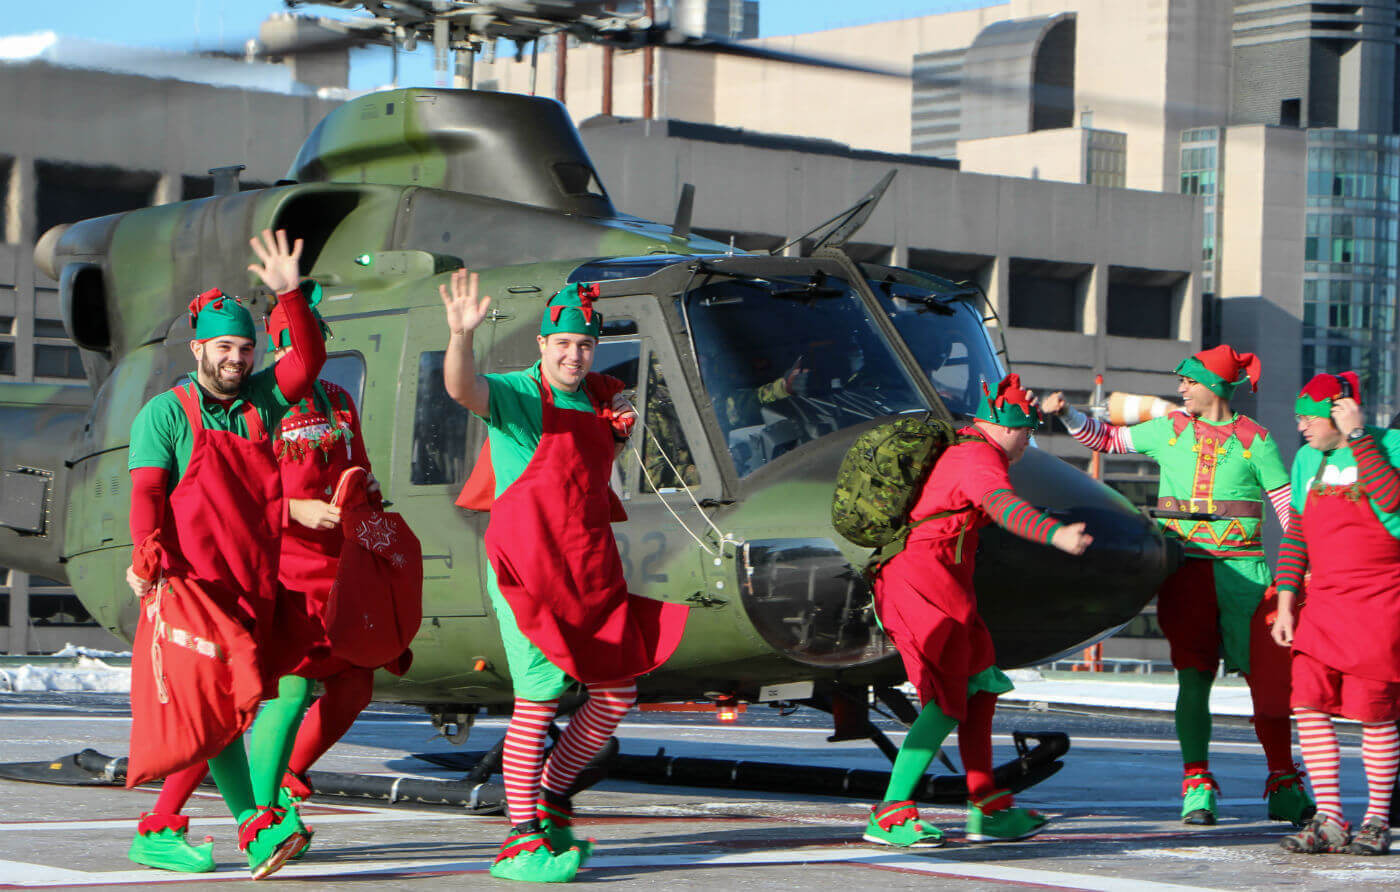 It's go time! The elves arrive on the rooftop helipad at SickKids hospital. Steve Bigg Photo